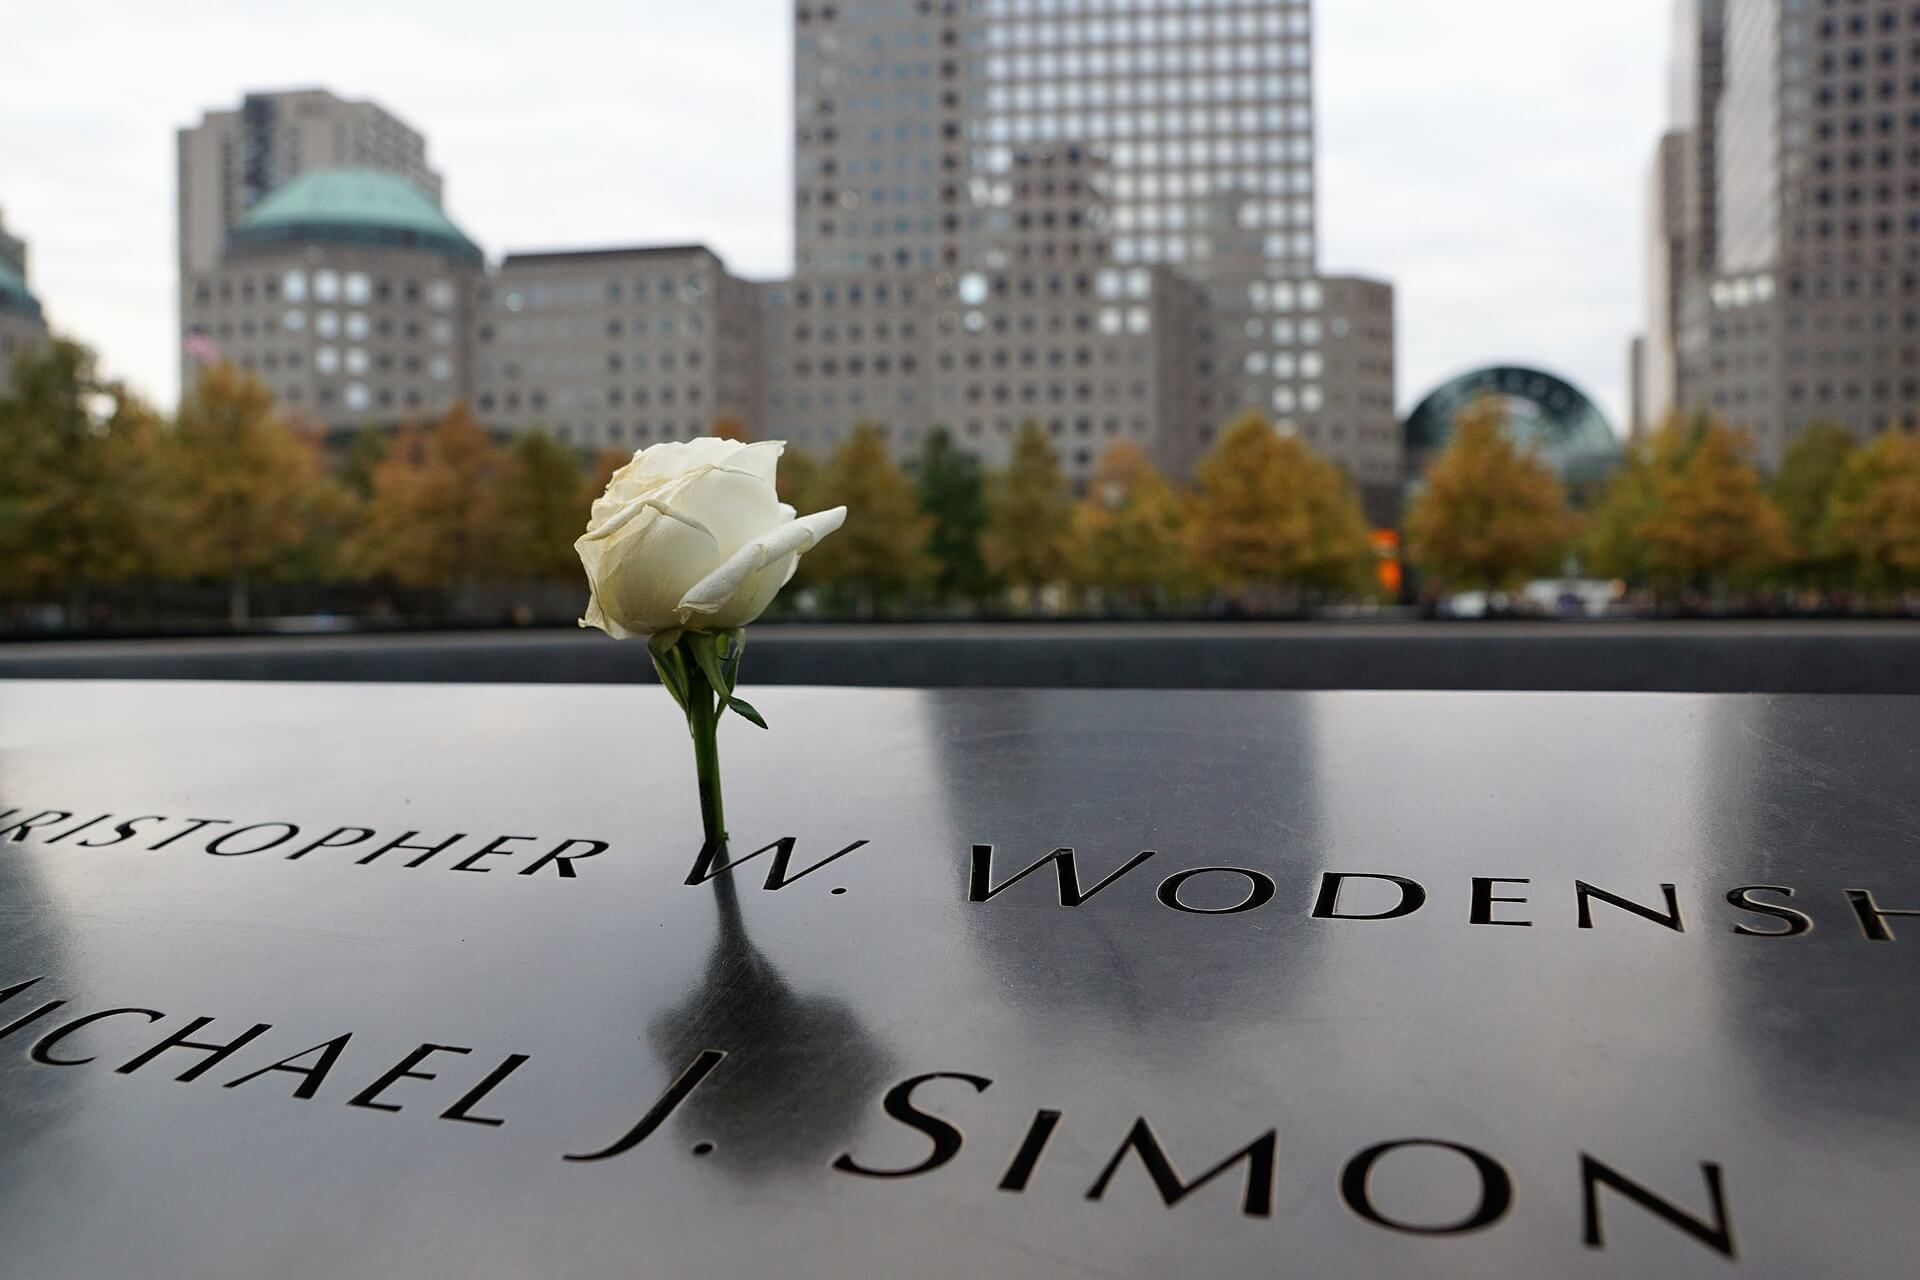 9/11 Memorial and Museum honors the victims